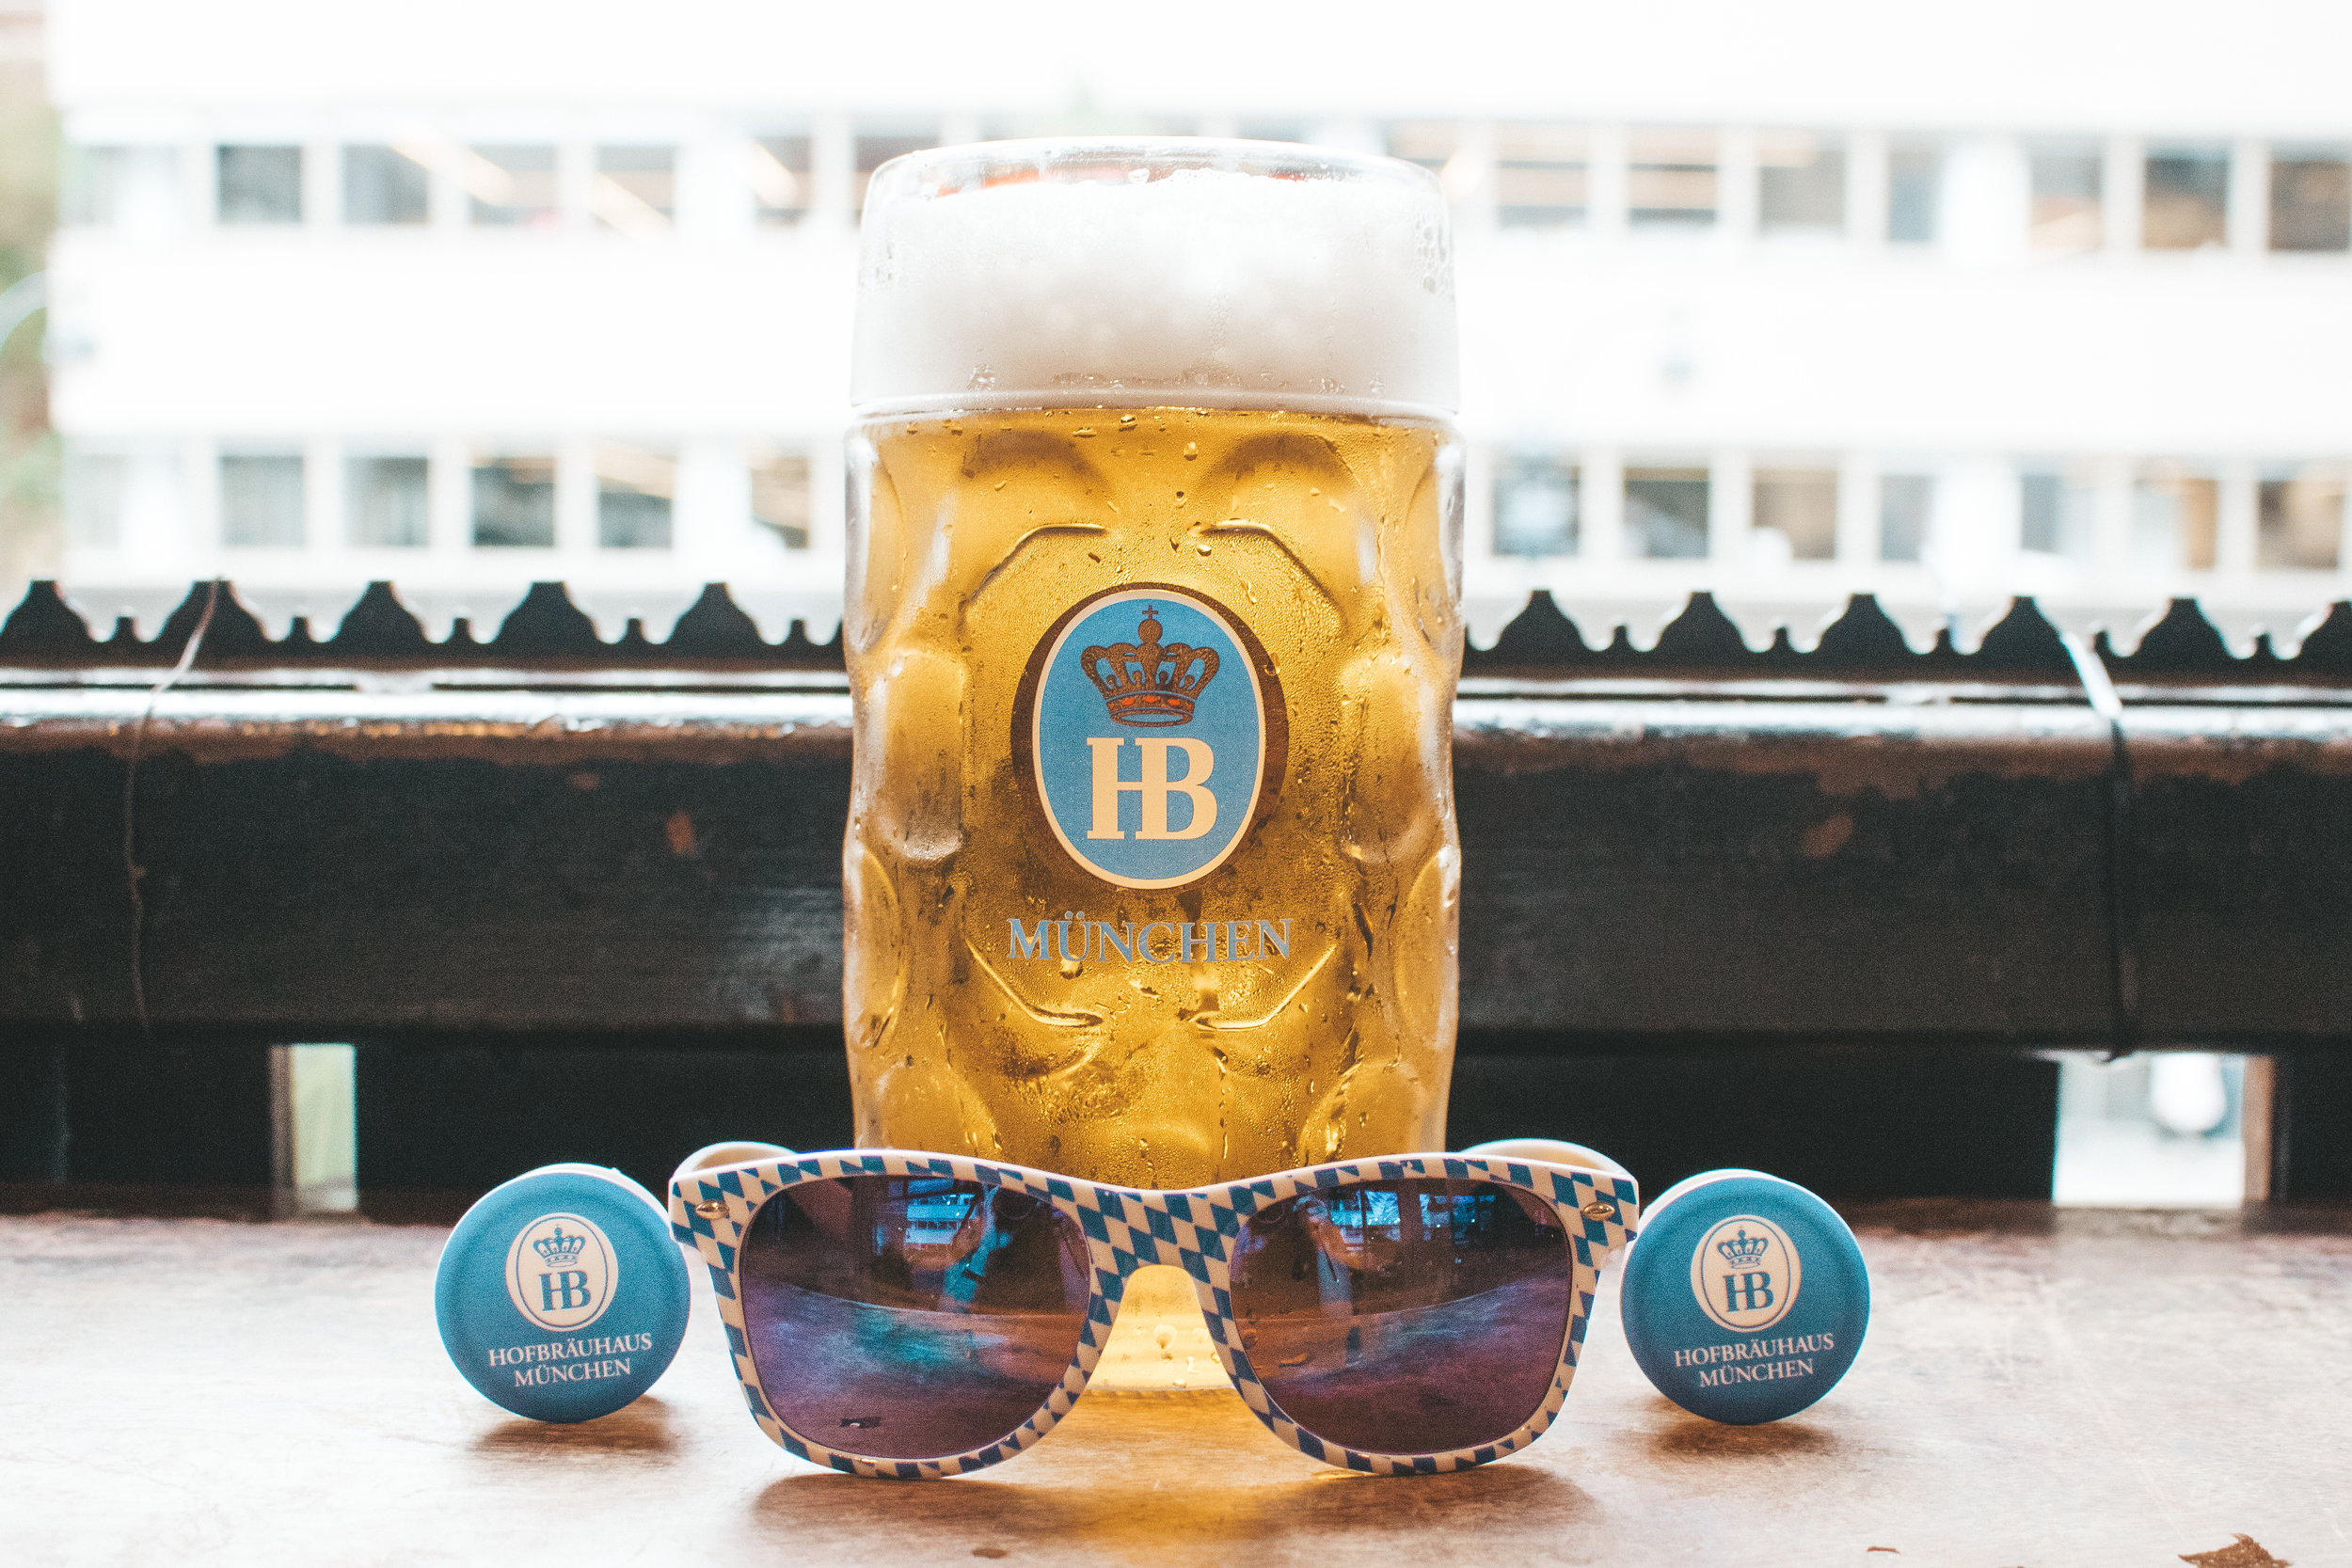 Giveaway Nights - Who doesn't love free stuff? Check out our schedule of giveaway nights and score yourself a free pair of Hofbräu sunglasses, a Hofbräu hat, or other fun prizes! *While supplies last.